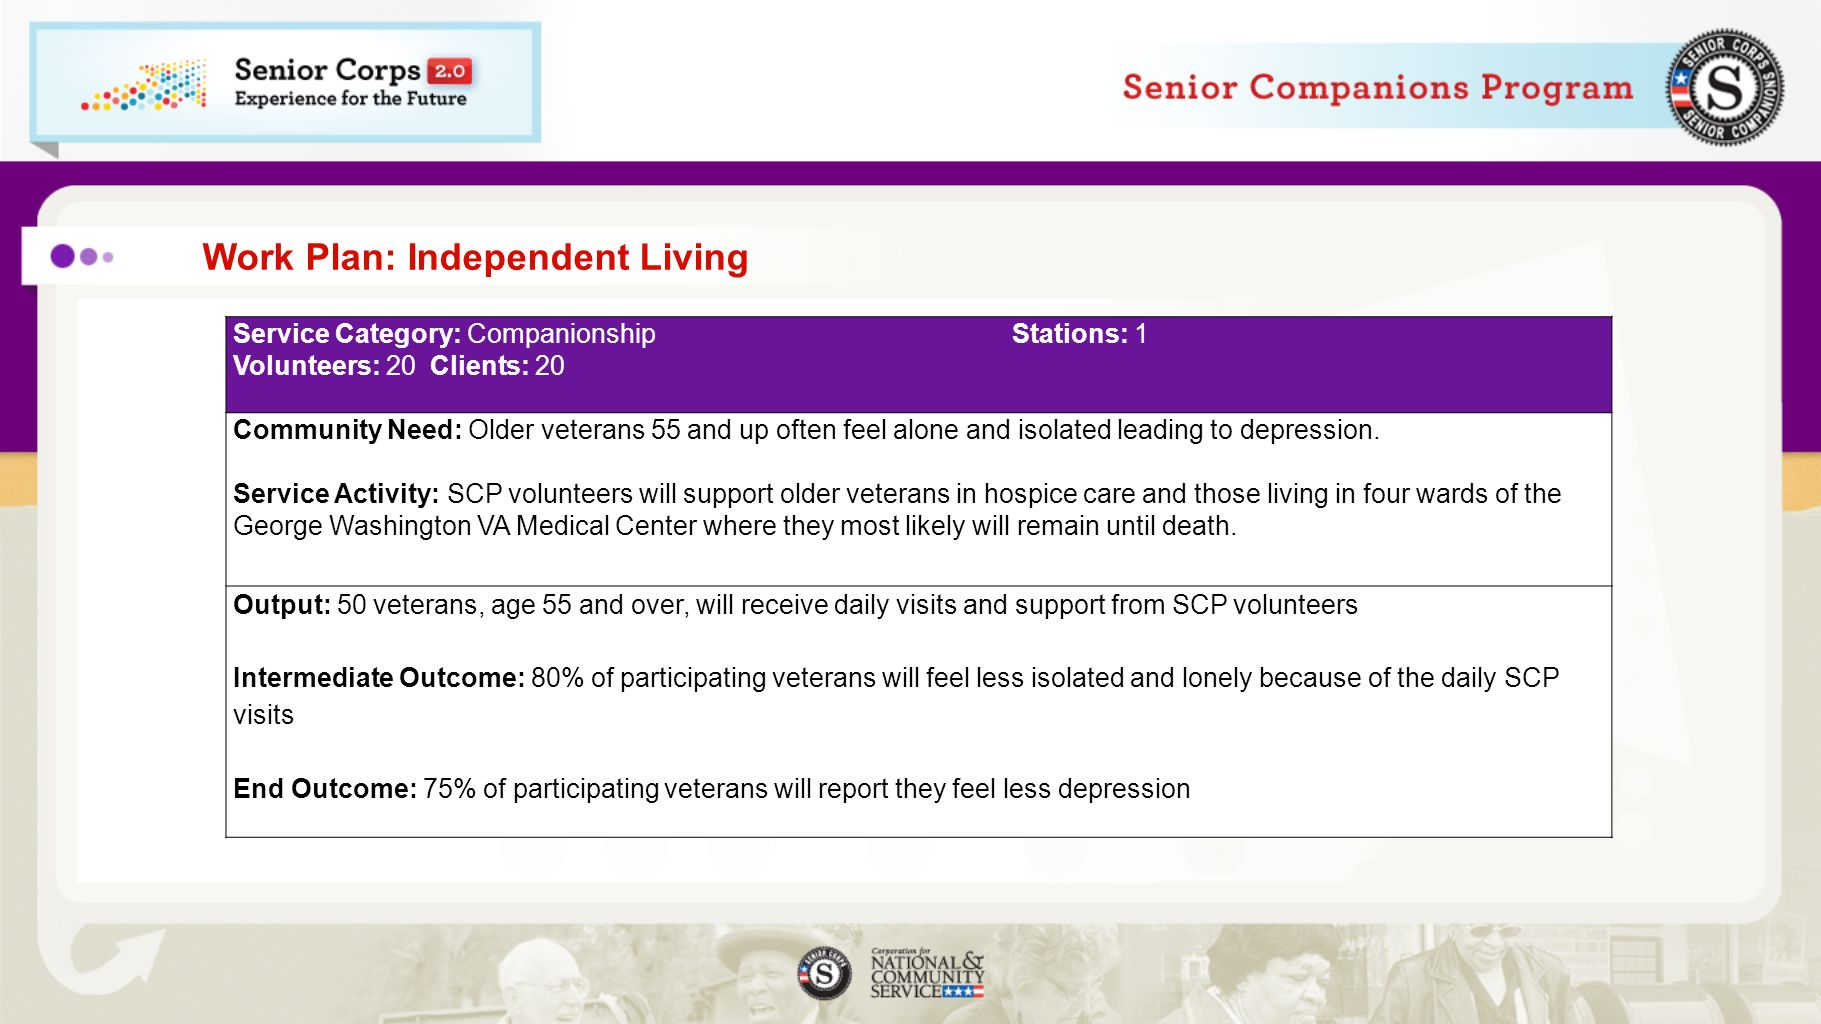 Work Plan: Independent Living Service Category: Companionship Stations: 1 Volunteers: 20 Clients: 20 Community Need: Older veterans 55 and up often feel alone and isolated leading to depression.